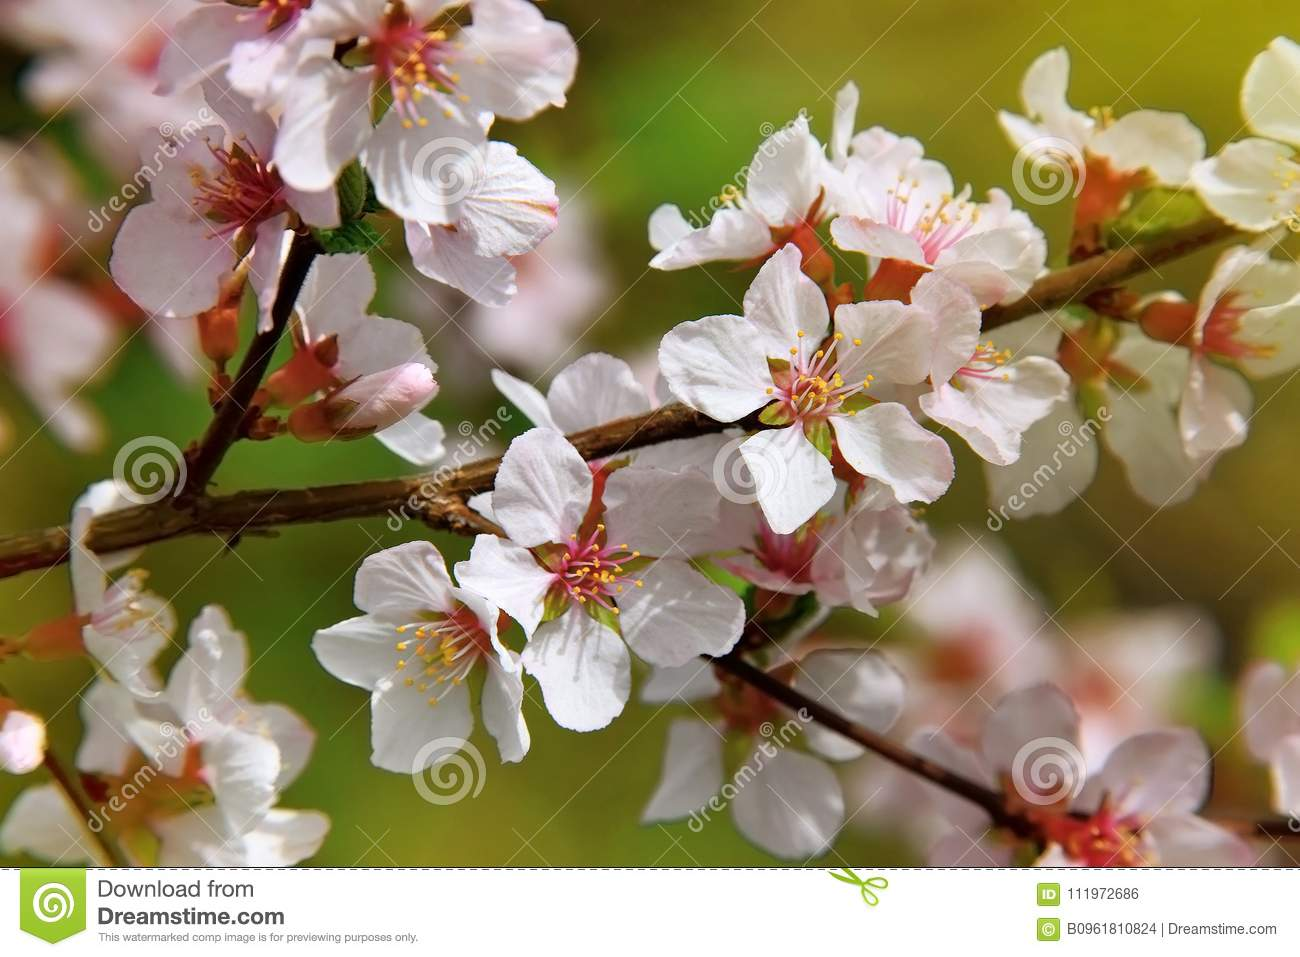 The cherry trees are blooming white flowers white cherry blos stock download the cherry trees are blooming white flowers white cherry blos stock photo image mightylinksfo